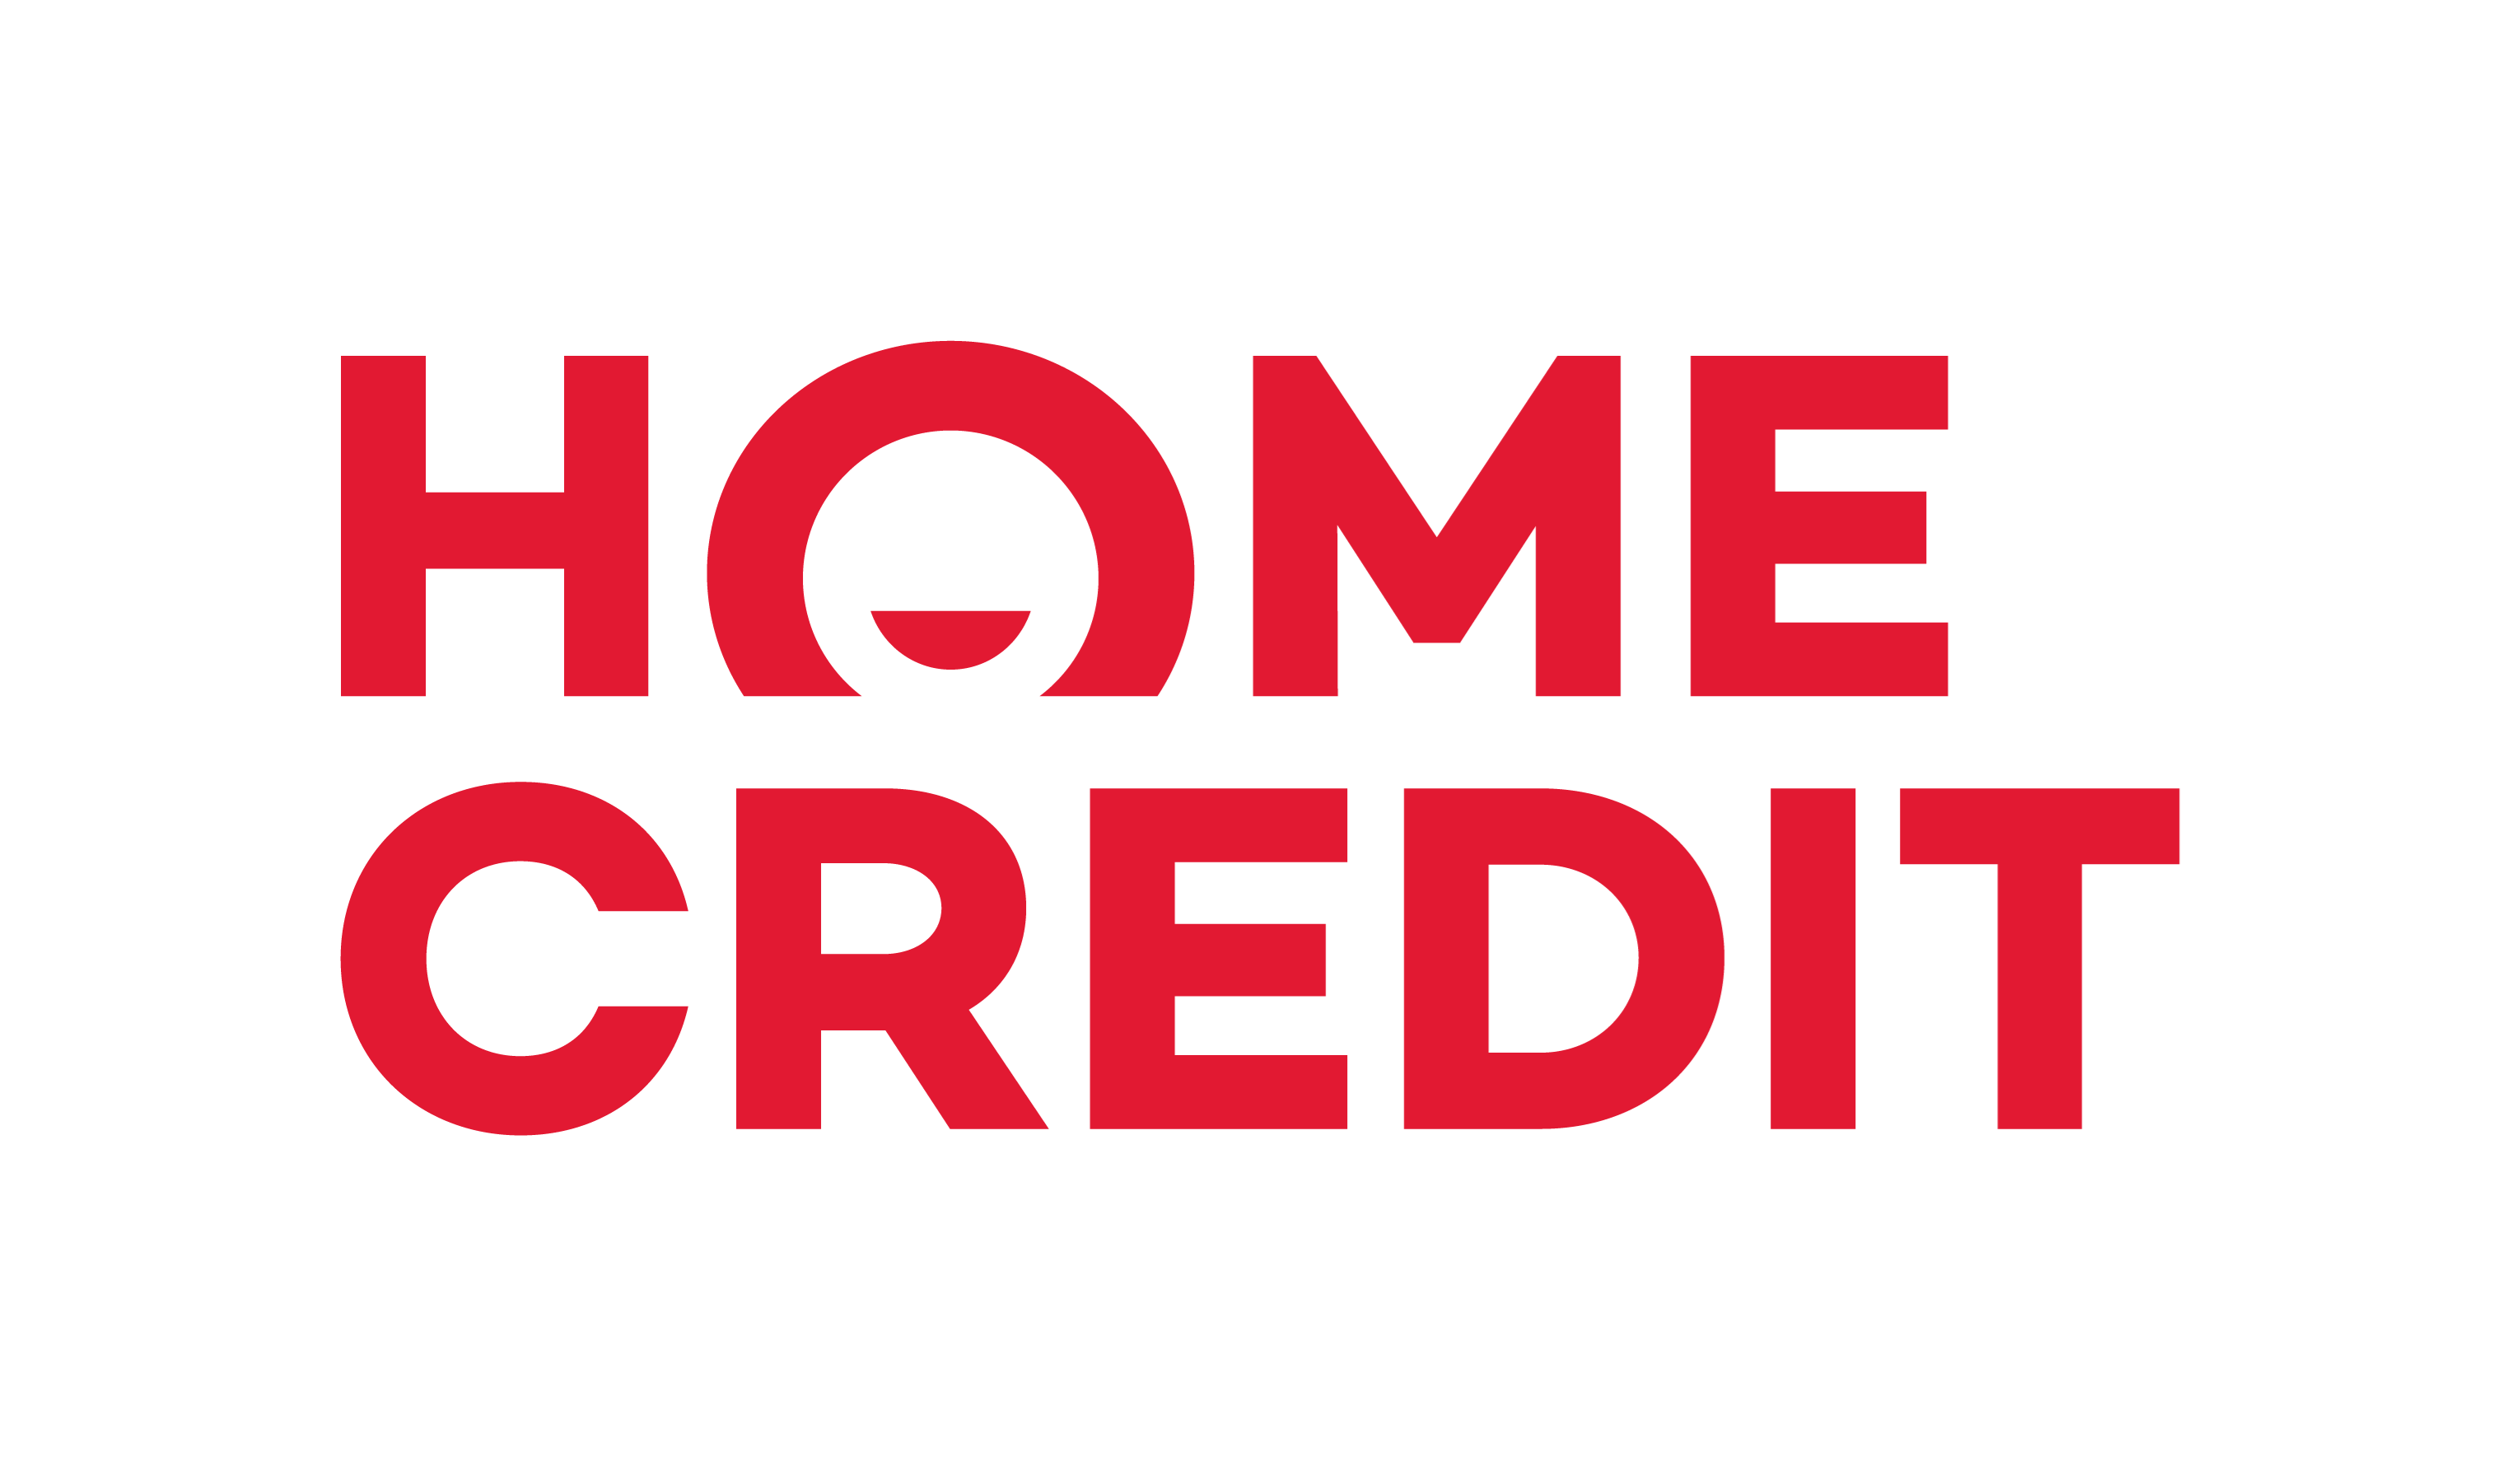 Home Credit Indonesia (Recruitment Page for OPERATION team)